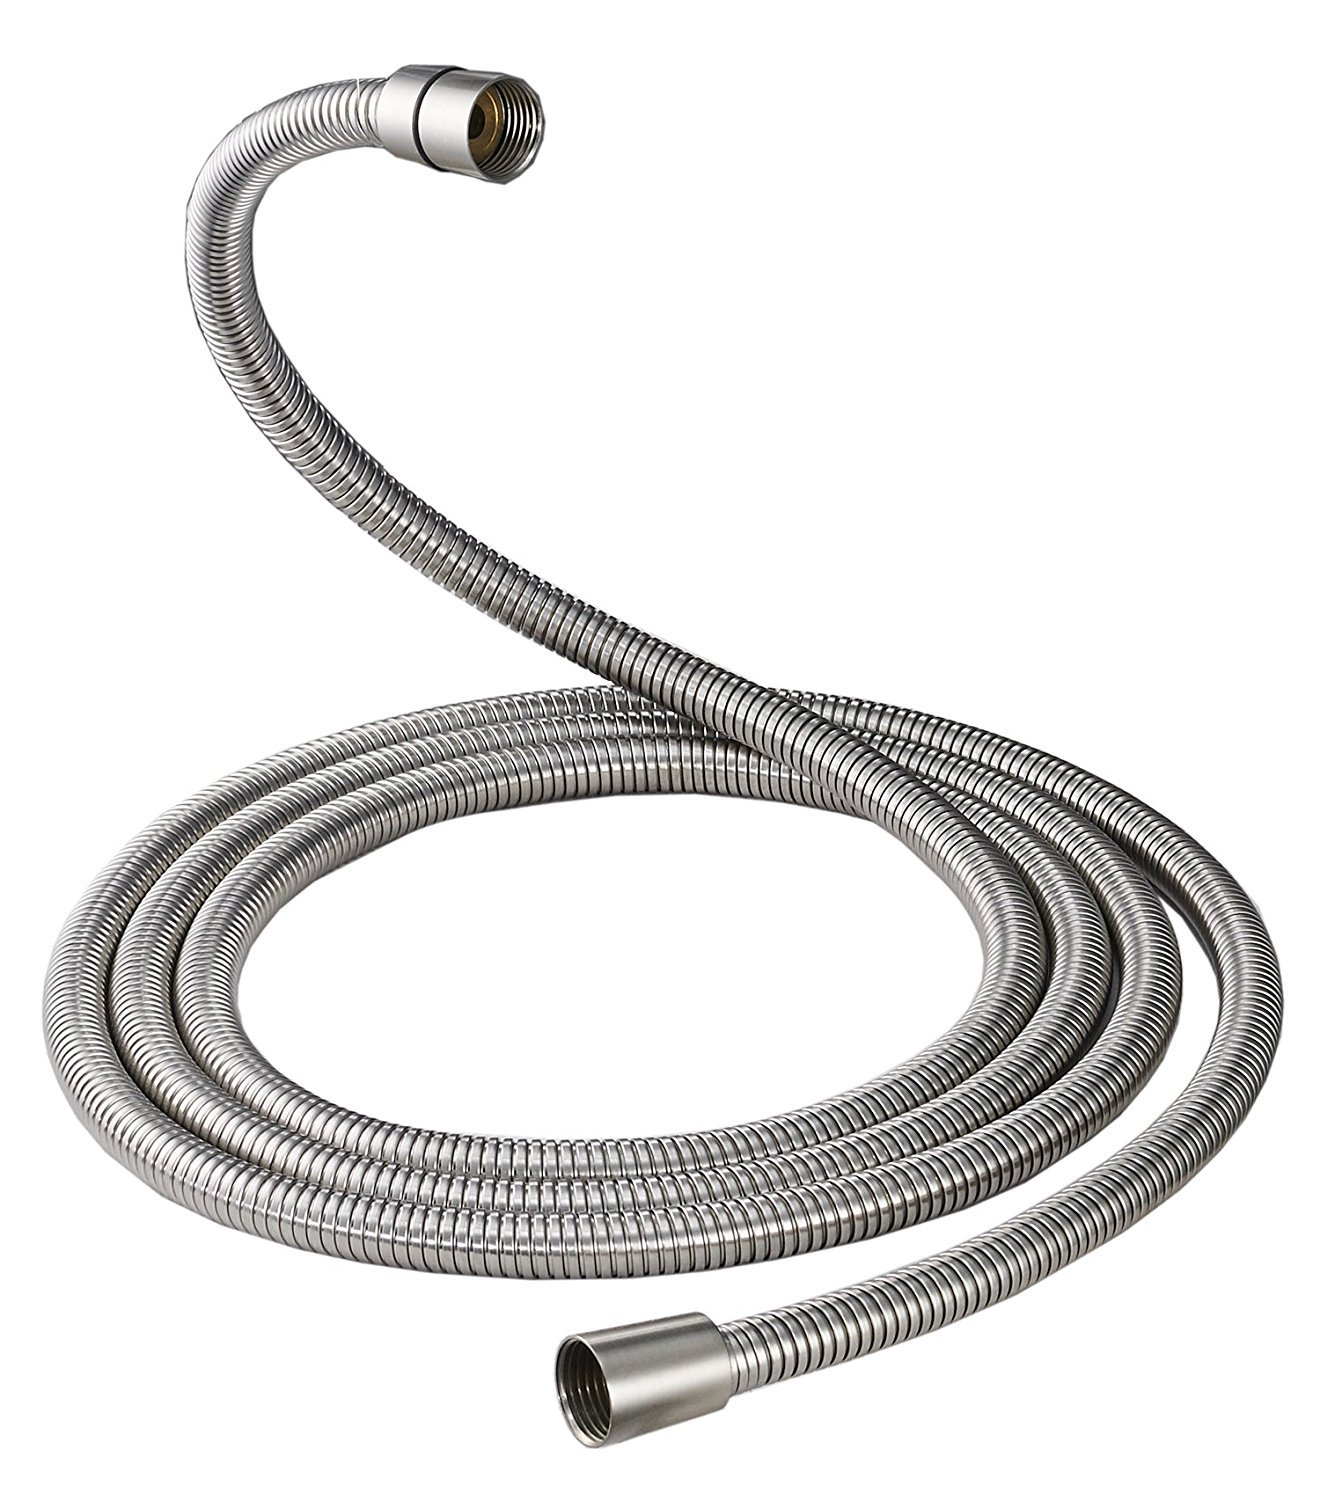 100 Inch Brass Fittings Extra Long Flexible Stainless Steel Replacement Handheld Shower Hose Brushed Nickel by Homevacious